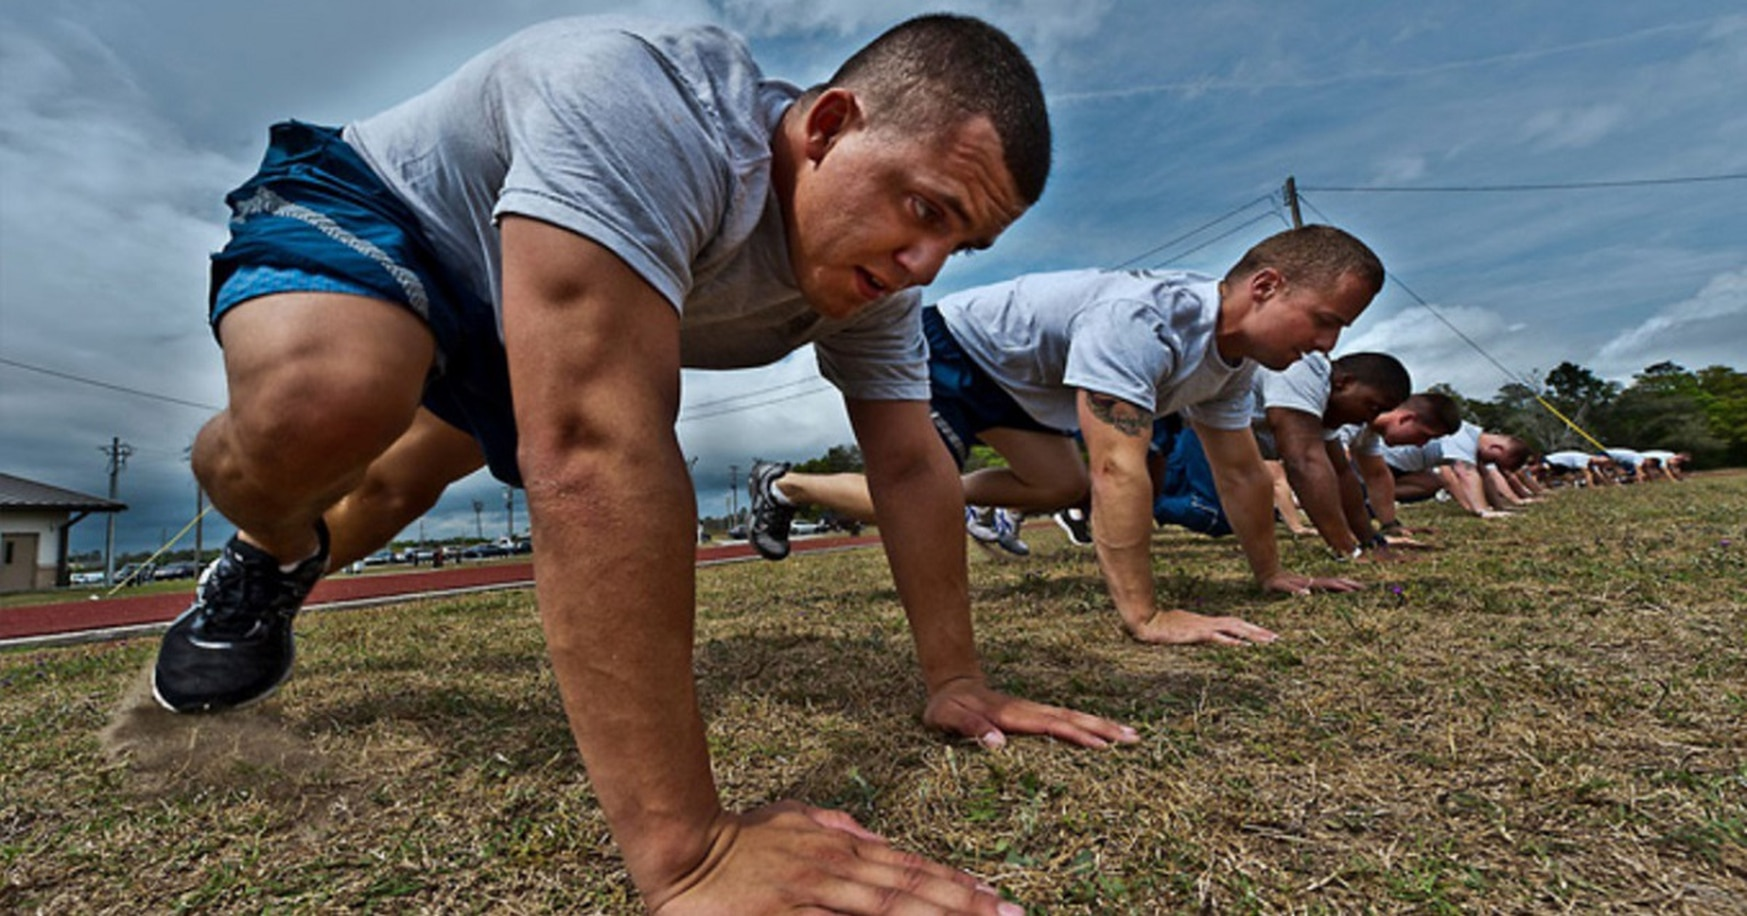 Chief Master Sgt. of the Air Force Kaleth Wright said he hopes airmen will focus more on living fit and healthy lifestyles throughout the year, not just on passing a test at a certain time.